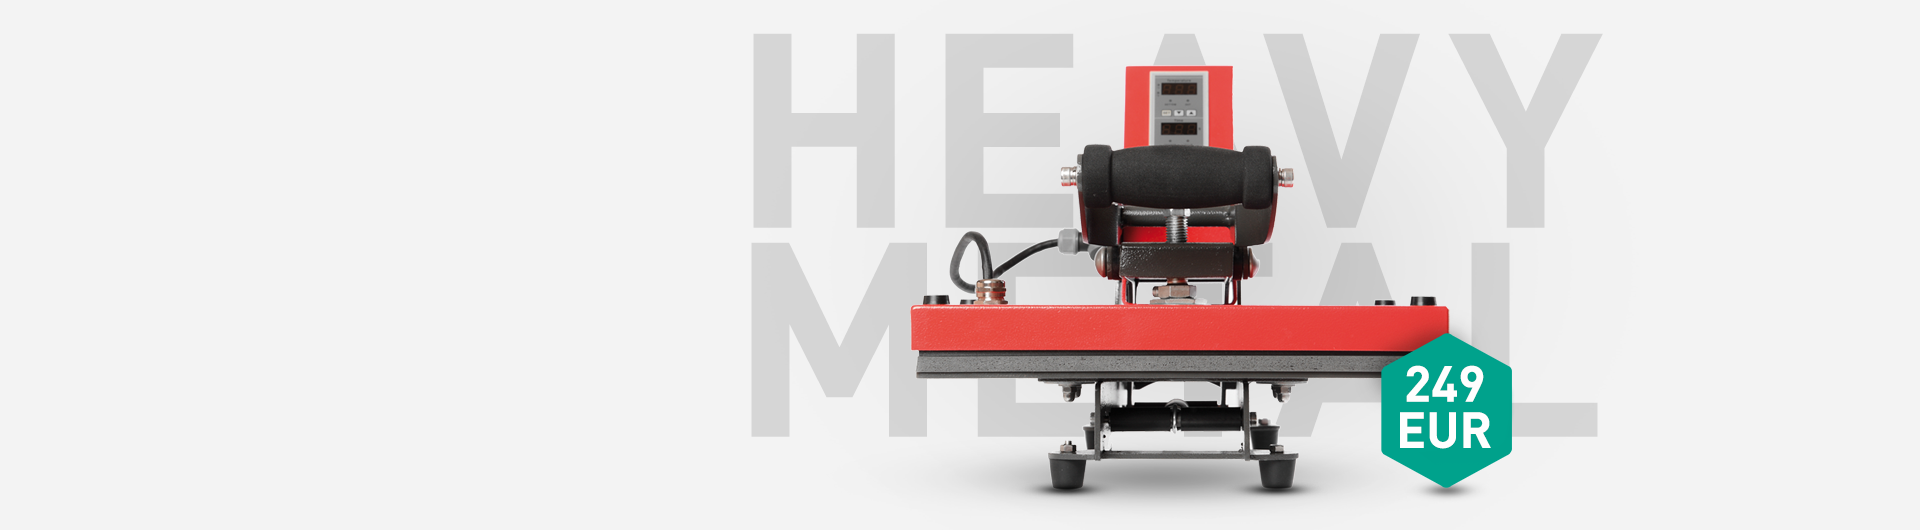 Secabo TC2 heat press at an incredible price